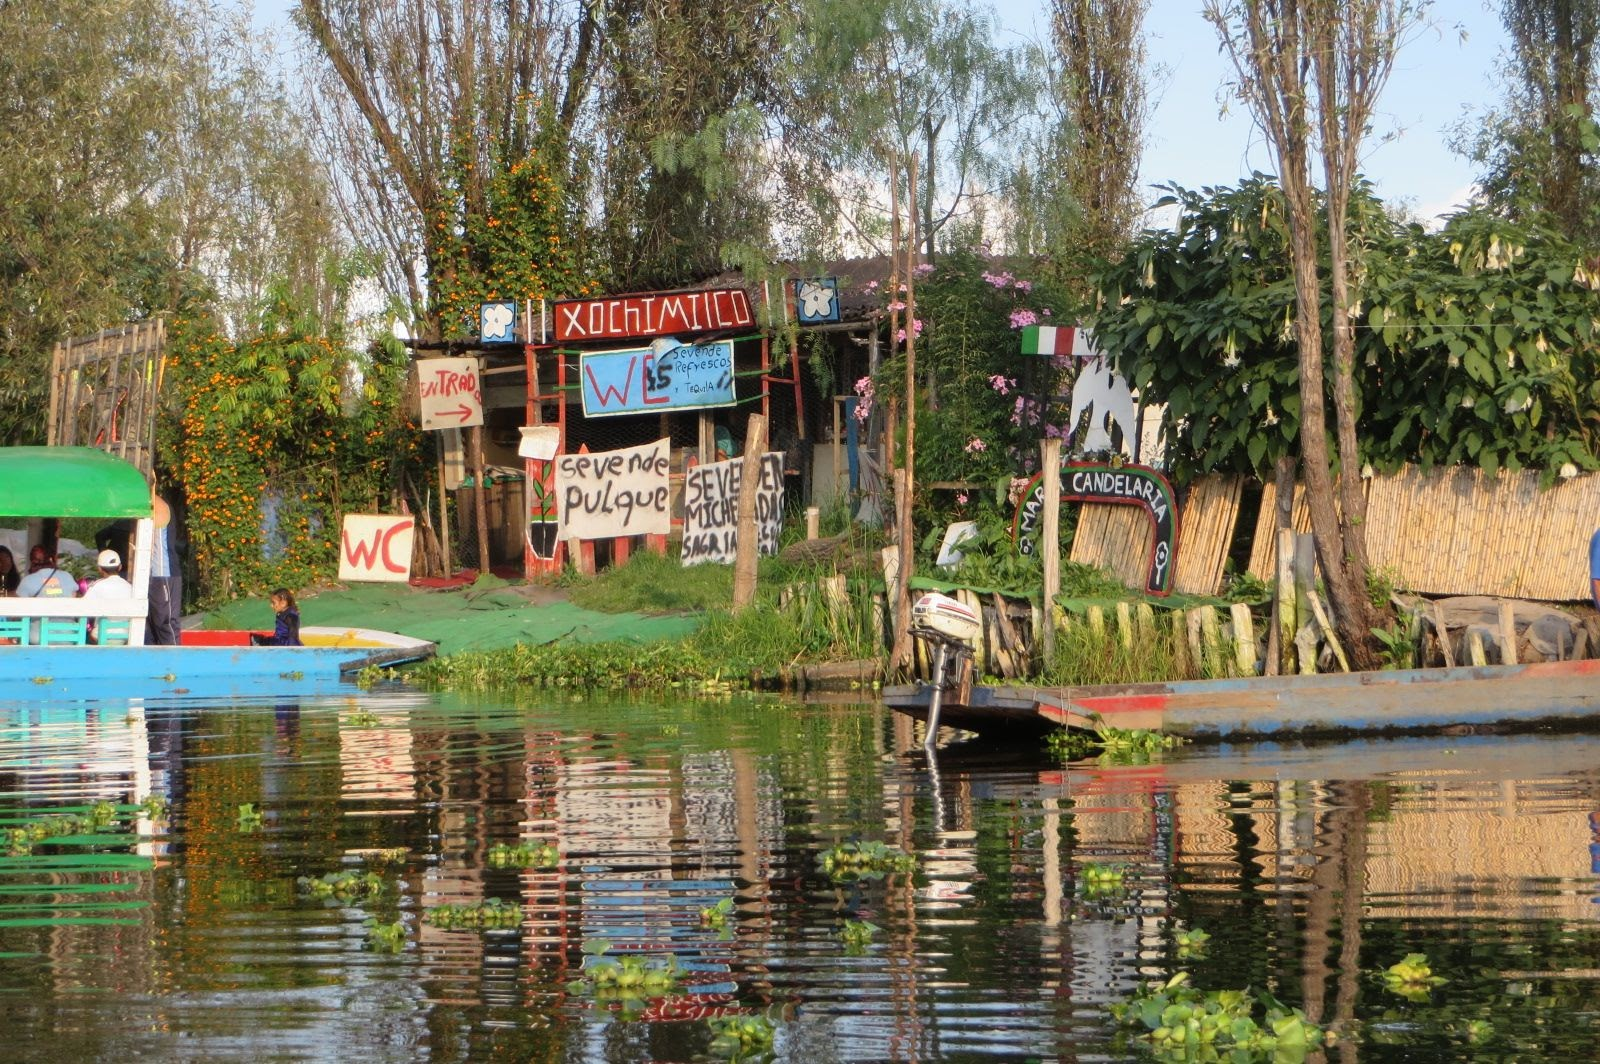 An example of a canal-side vendor and bathroom!!